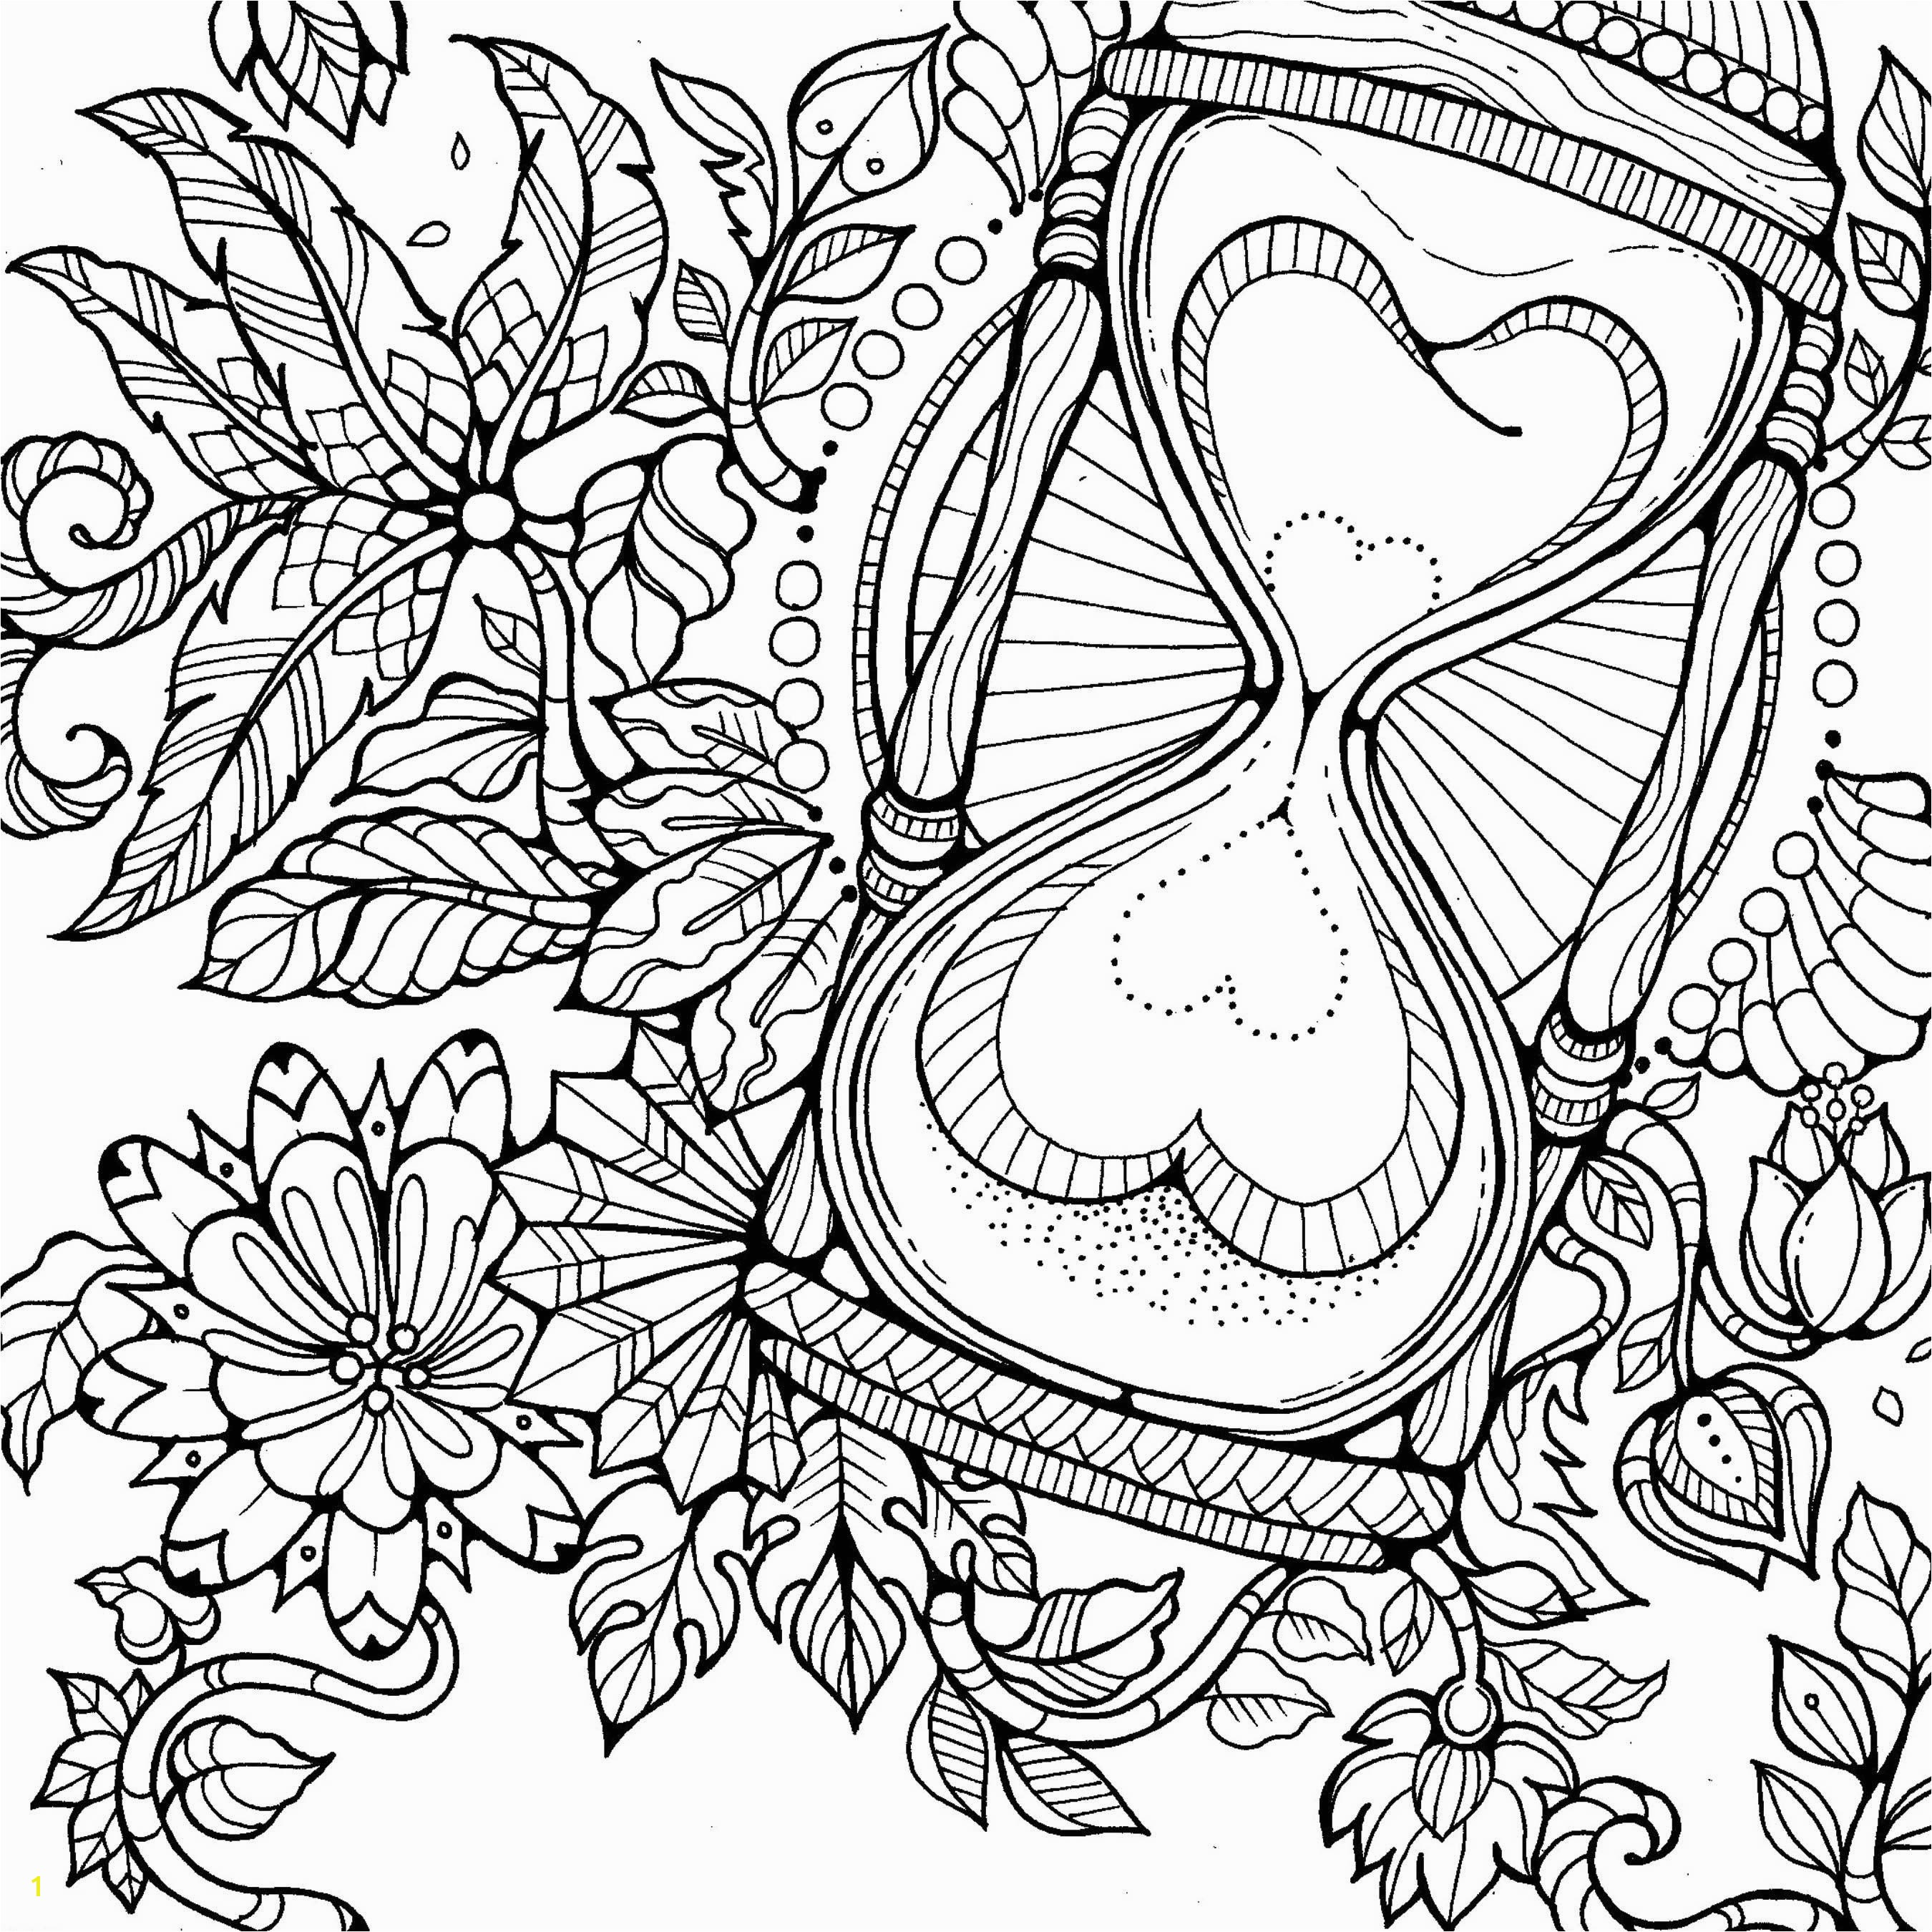 Celestial Seasonings Coloring Pages New Colouring Pages by Dee Mans Behance Coloring Celestial Seasonings